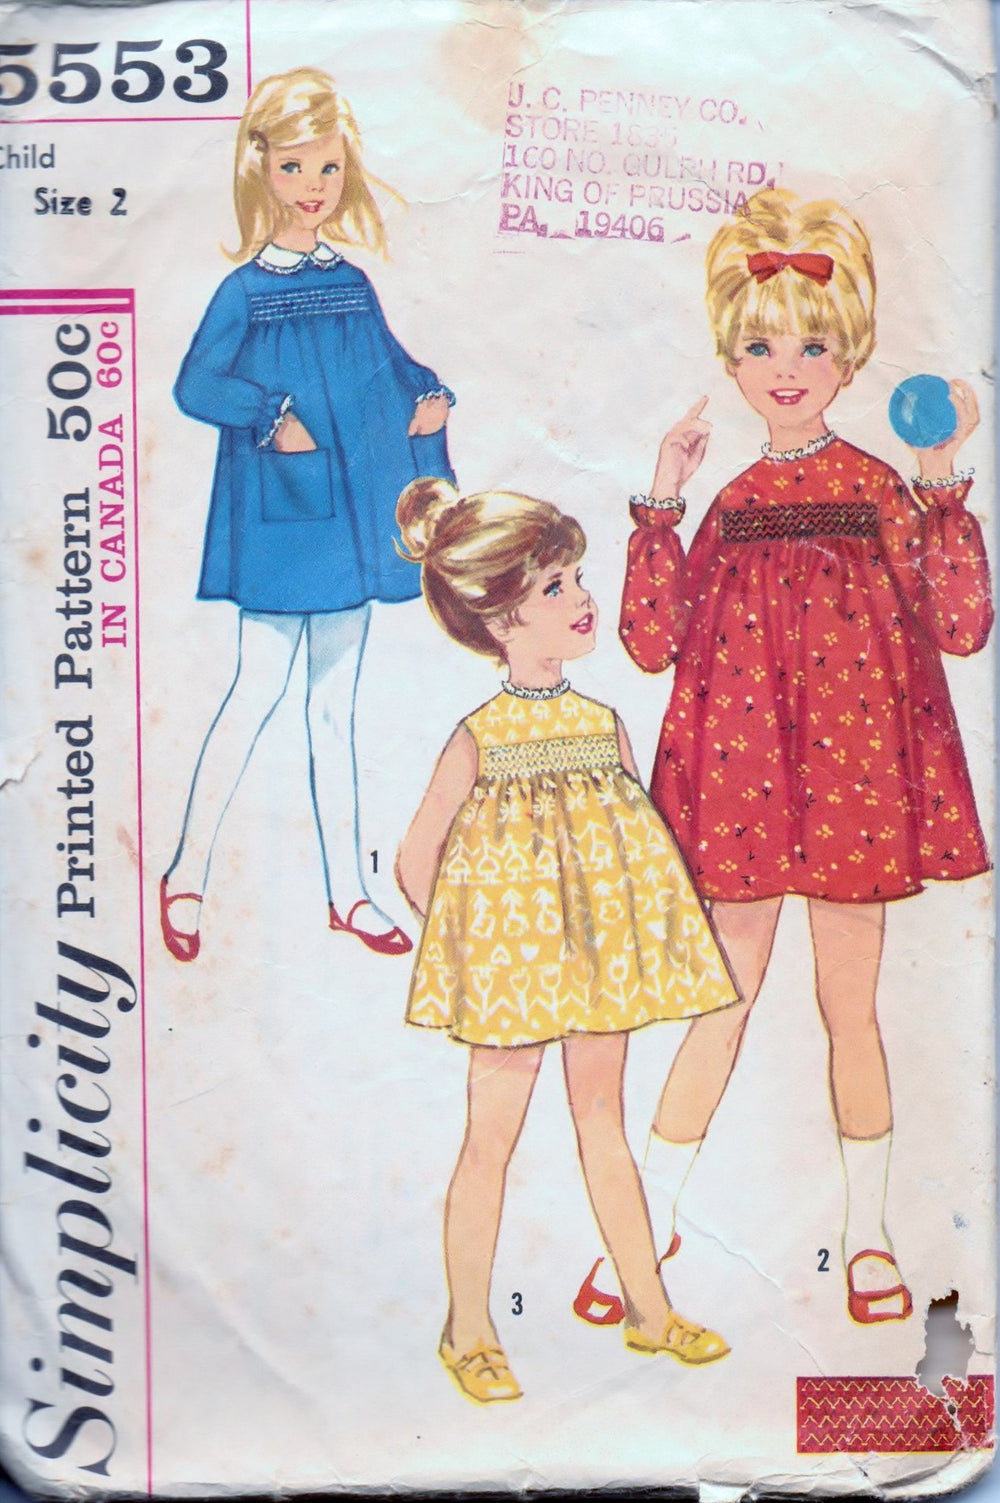 Simplicity 5553 Little Girls Toddler One Piece Dress Detachable Collar Vintage 1960's Sewing Pattern - VintageStitching - Vintage Sewing Patterns